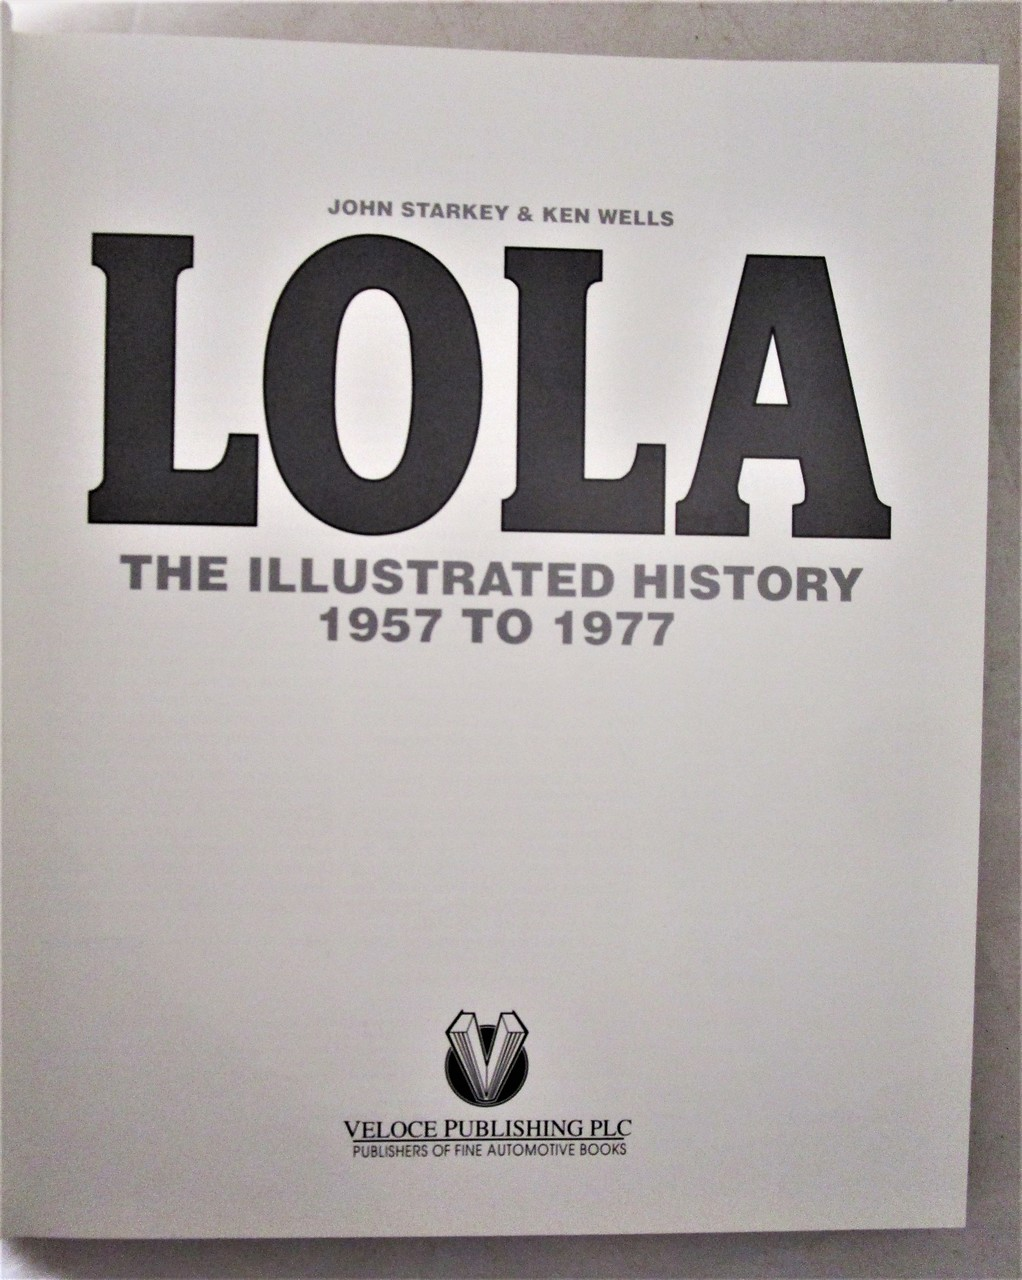 LOLA: THE ILLUSTRATED HISTORY 1957-1977, by J. Starkey & K. Wells - 1998